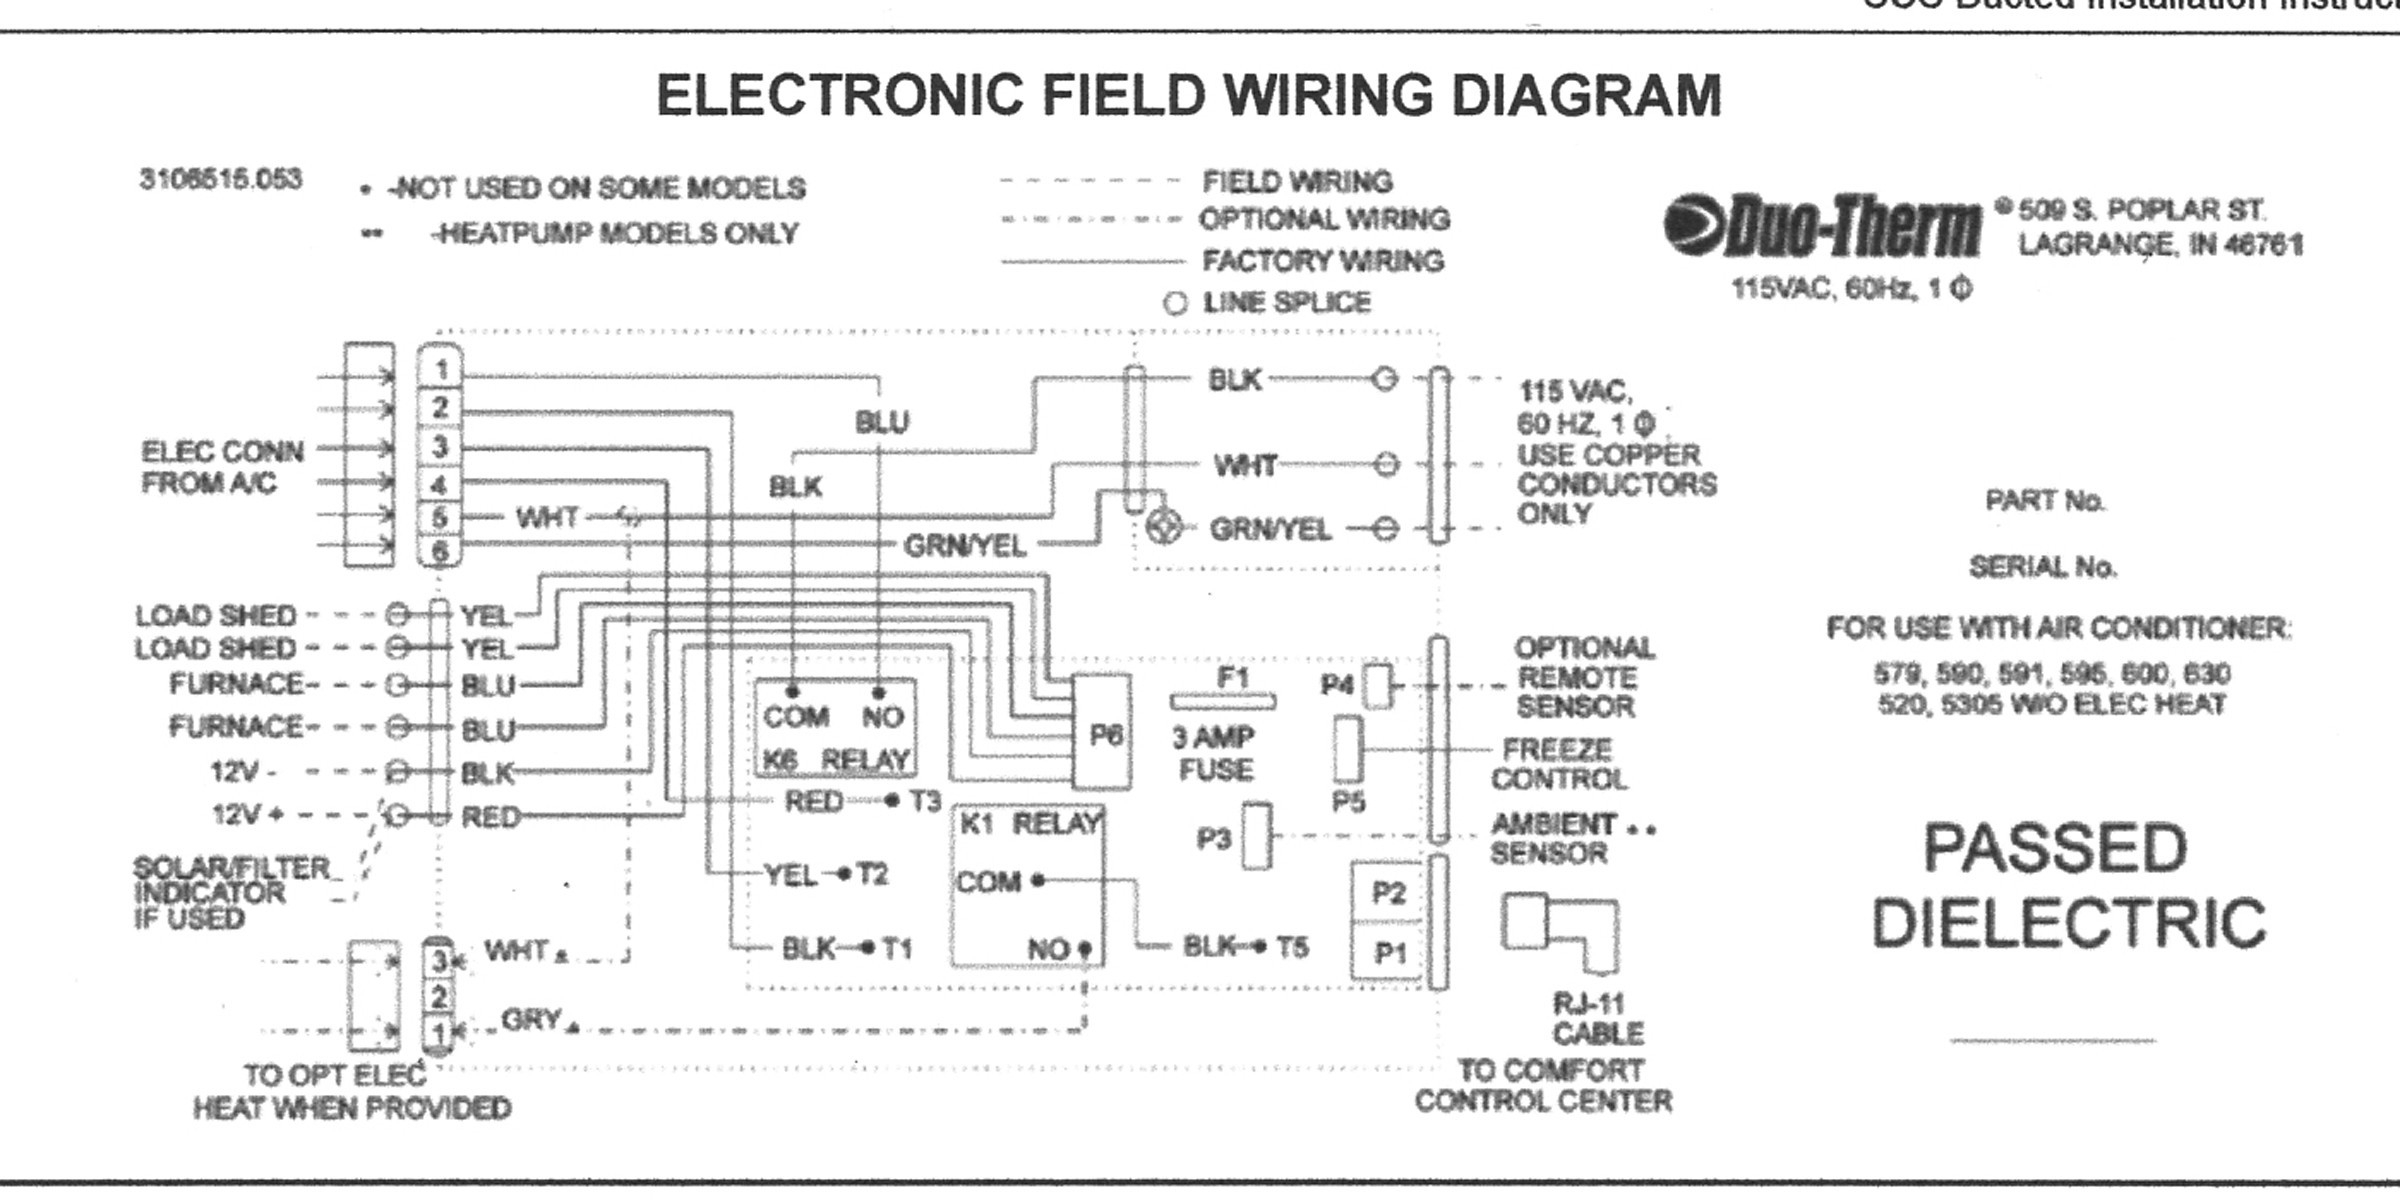 duo therm rv air conditioner wiring diagram Collection-Rv Ac Wiring Diagram Valid Wiring A Ac thermostat Diagram New Duo therm thermostat Wiring 12-h